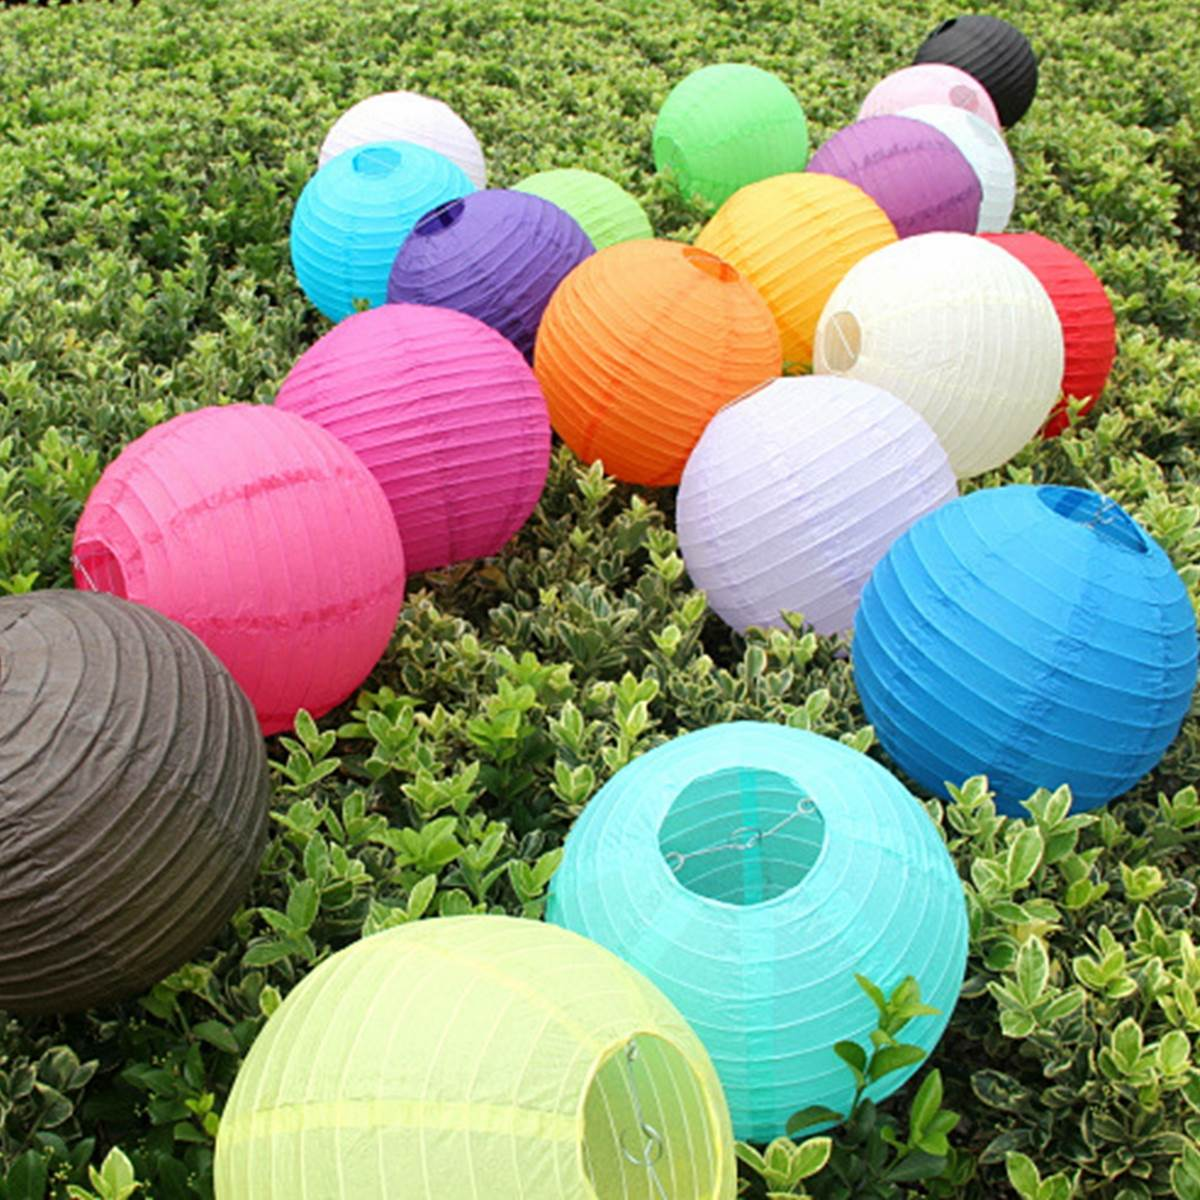 Hot Sale Multicolor 50CM 20 inch Round Chinese Paper Lantern for Birthday Wedding Party Decoration gift craft DIY Balloon(China (Mainland))